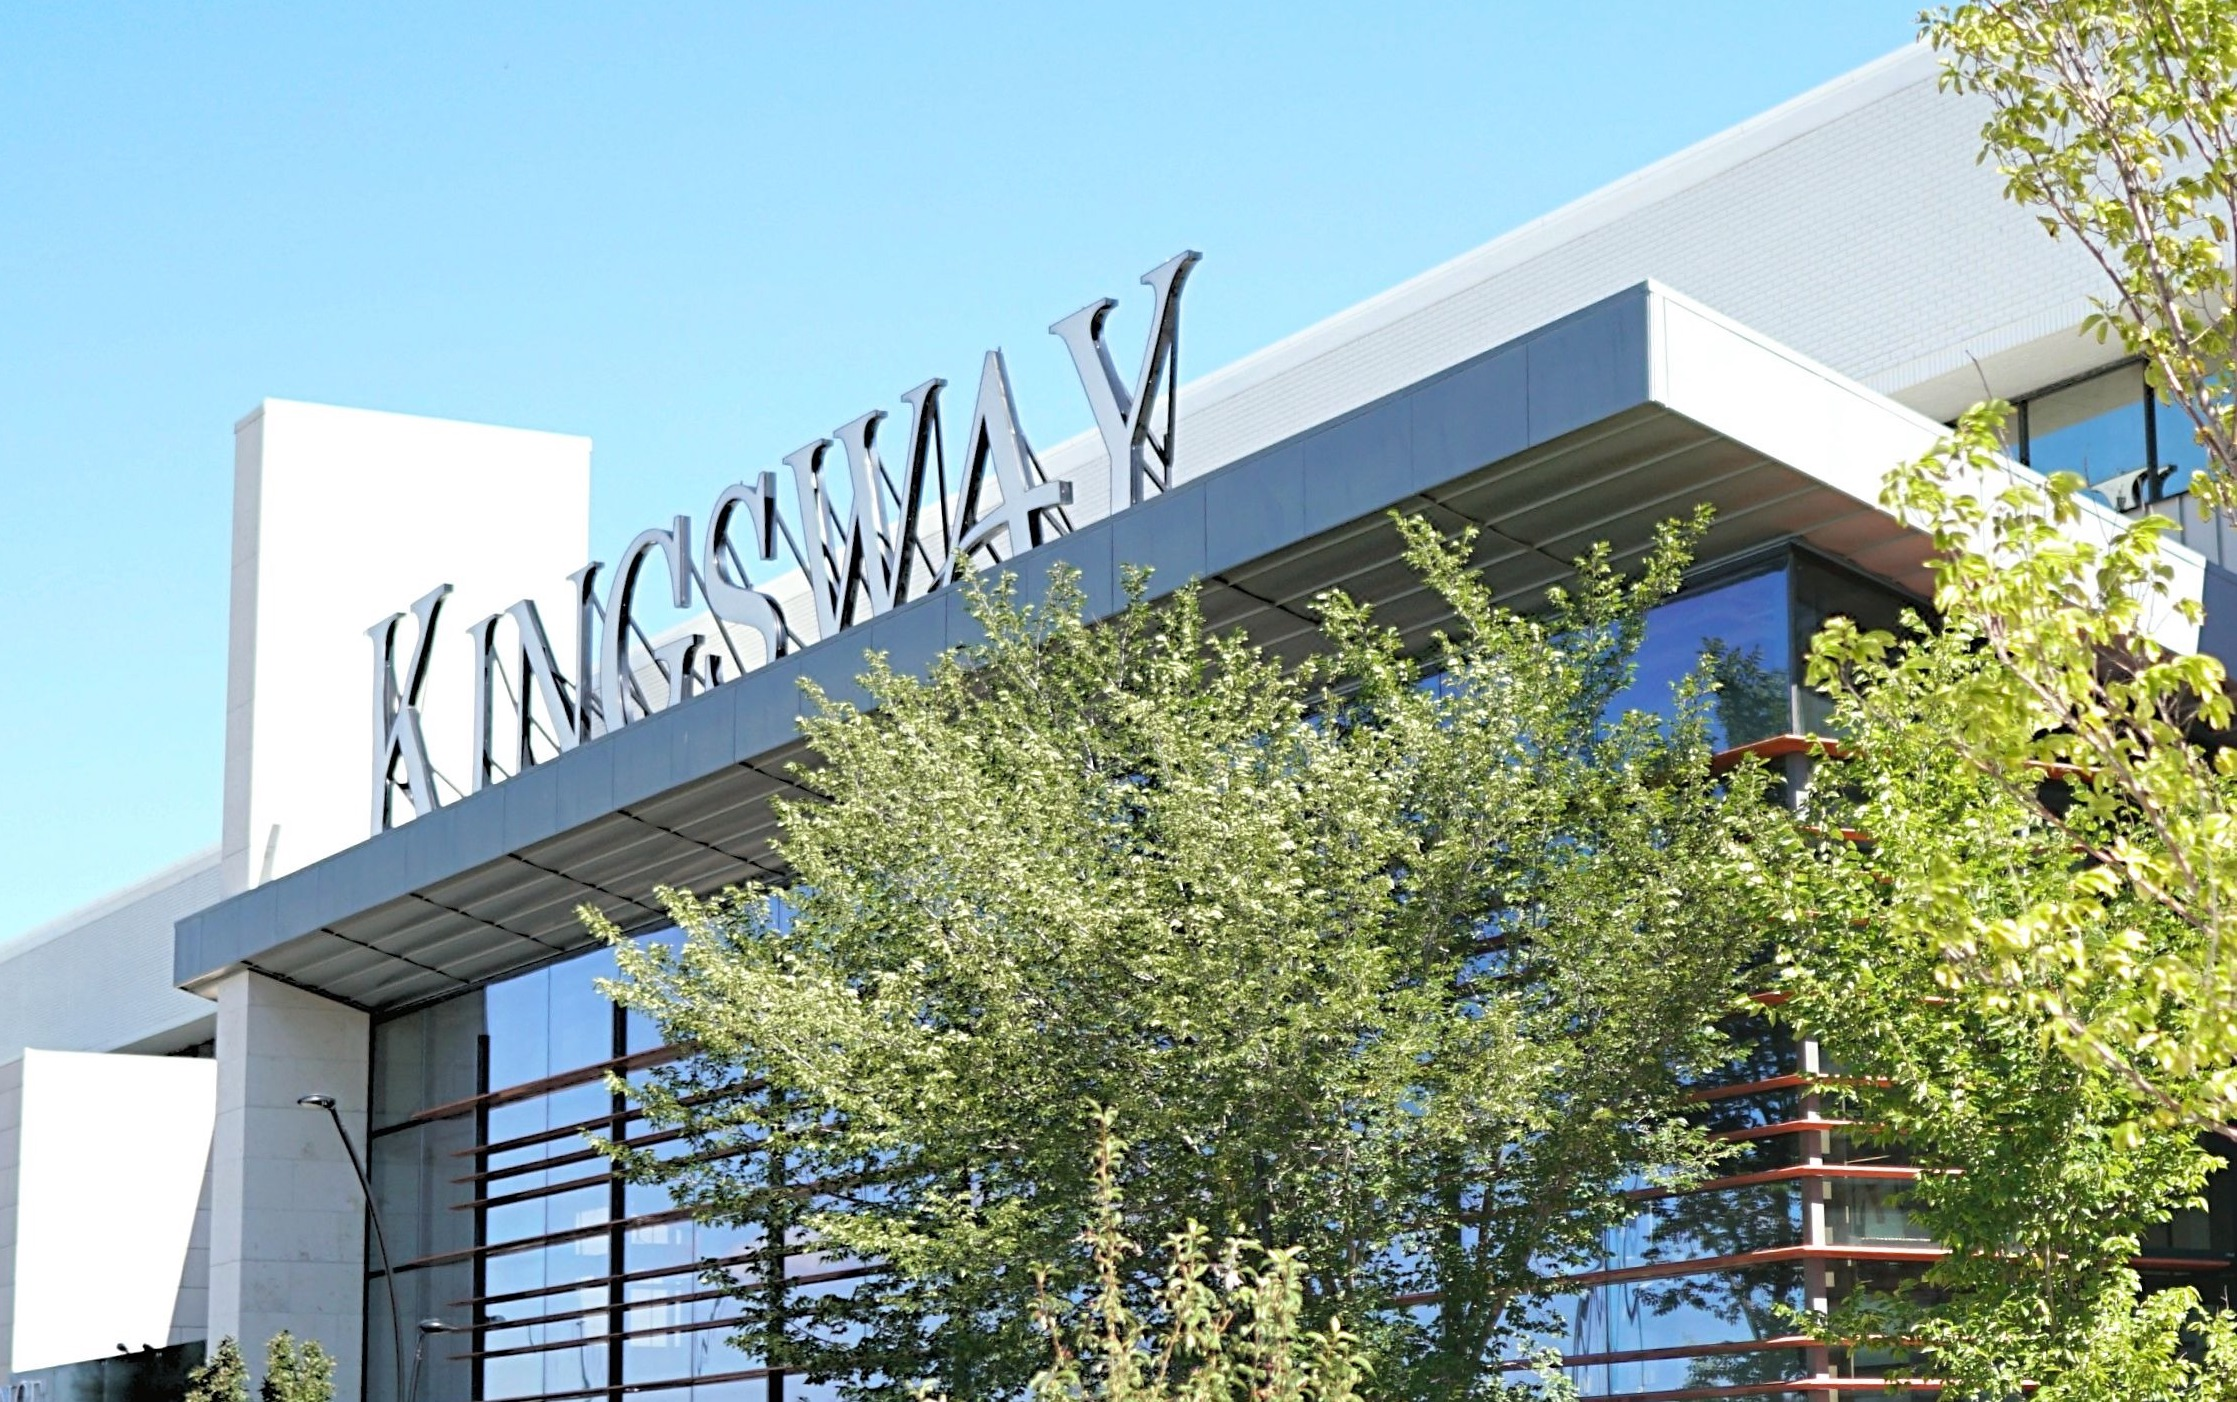 Kingsway exterior entrance